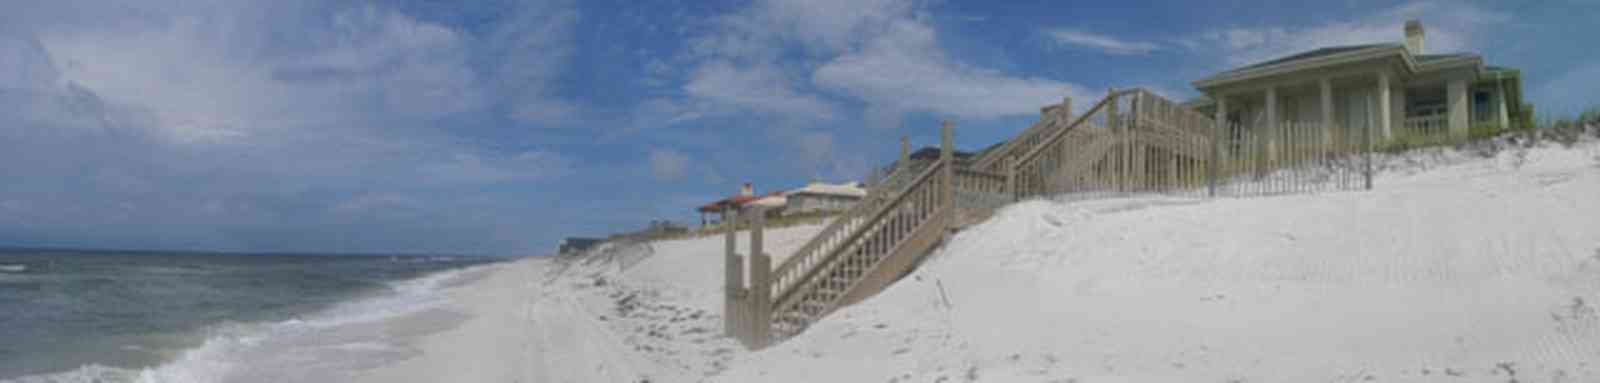 Pensacola-Beach:-Hermosa-St-Homes_04.jpg:  dune, sand, stairs, boardwalk, subdivision, gulf of mexcio